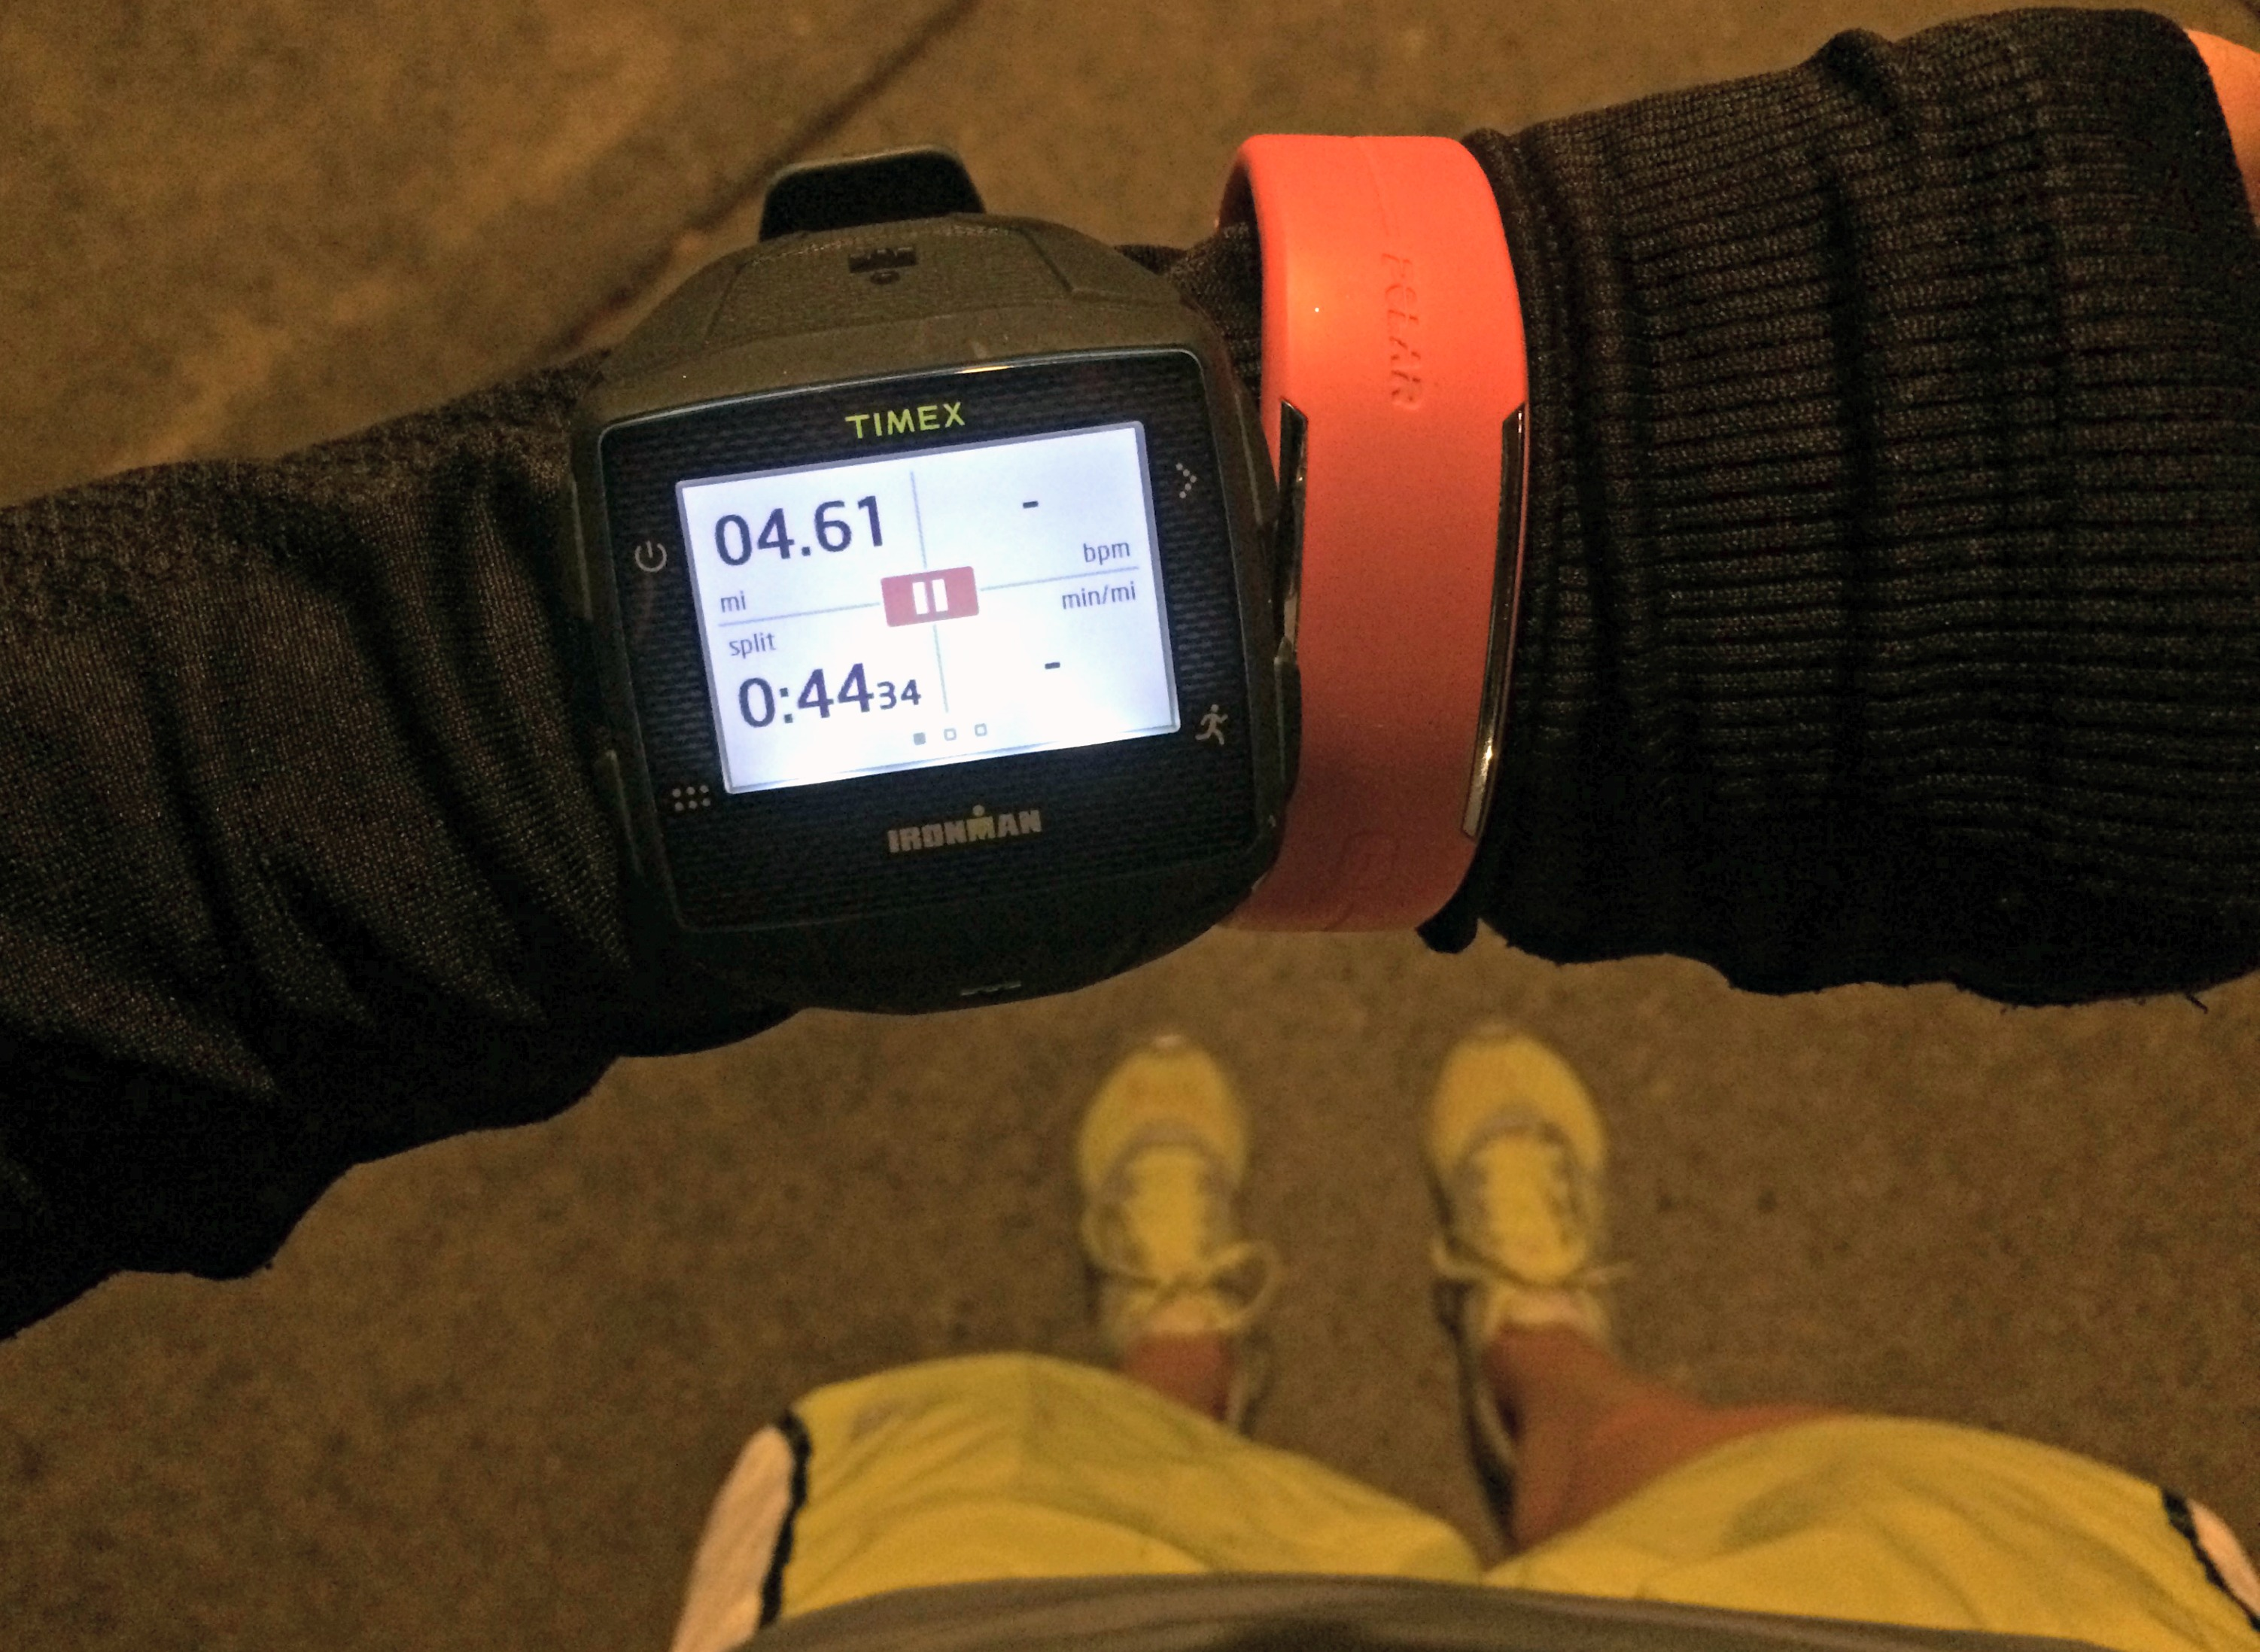 night run with timex gps watch